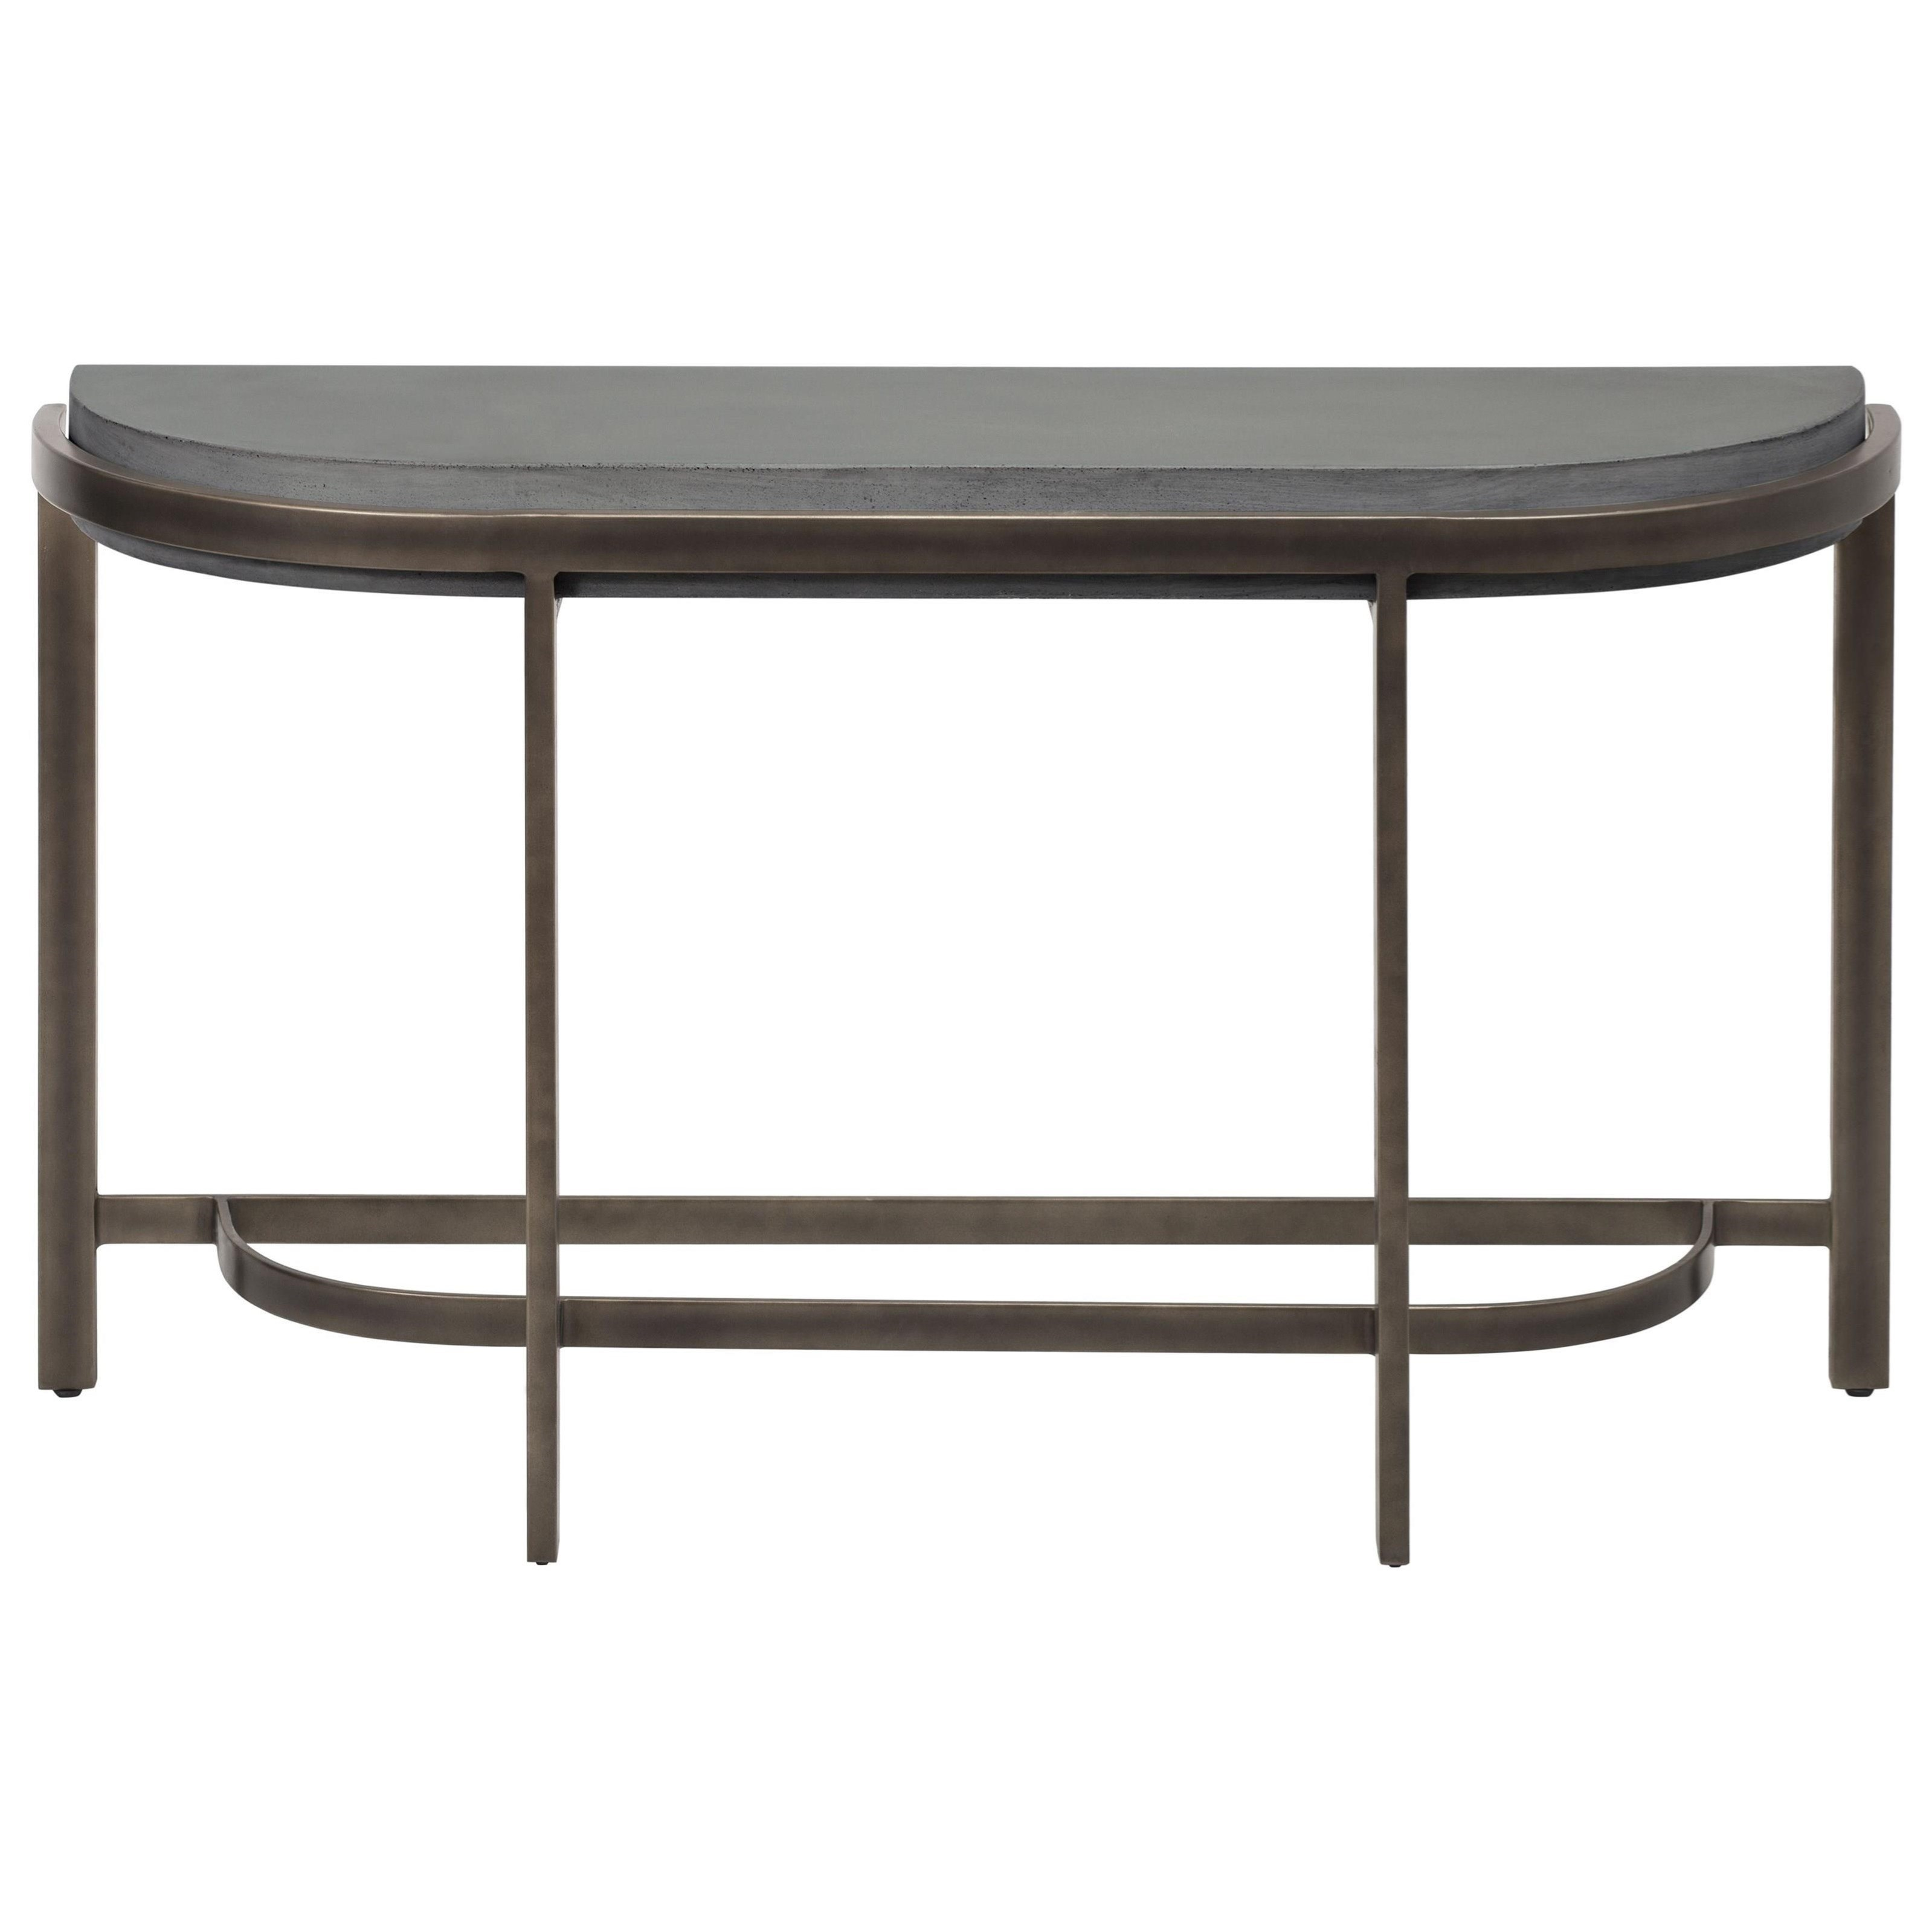 Barcelona Console Table at Sadler's Home Furnishings